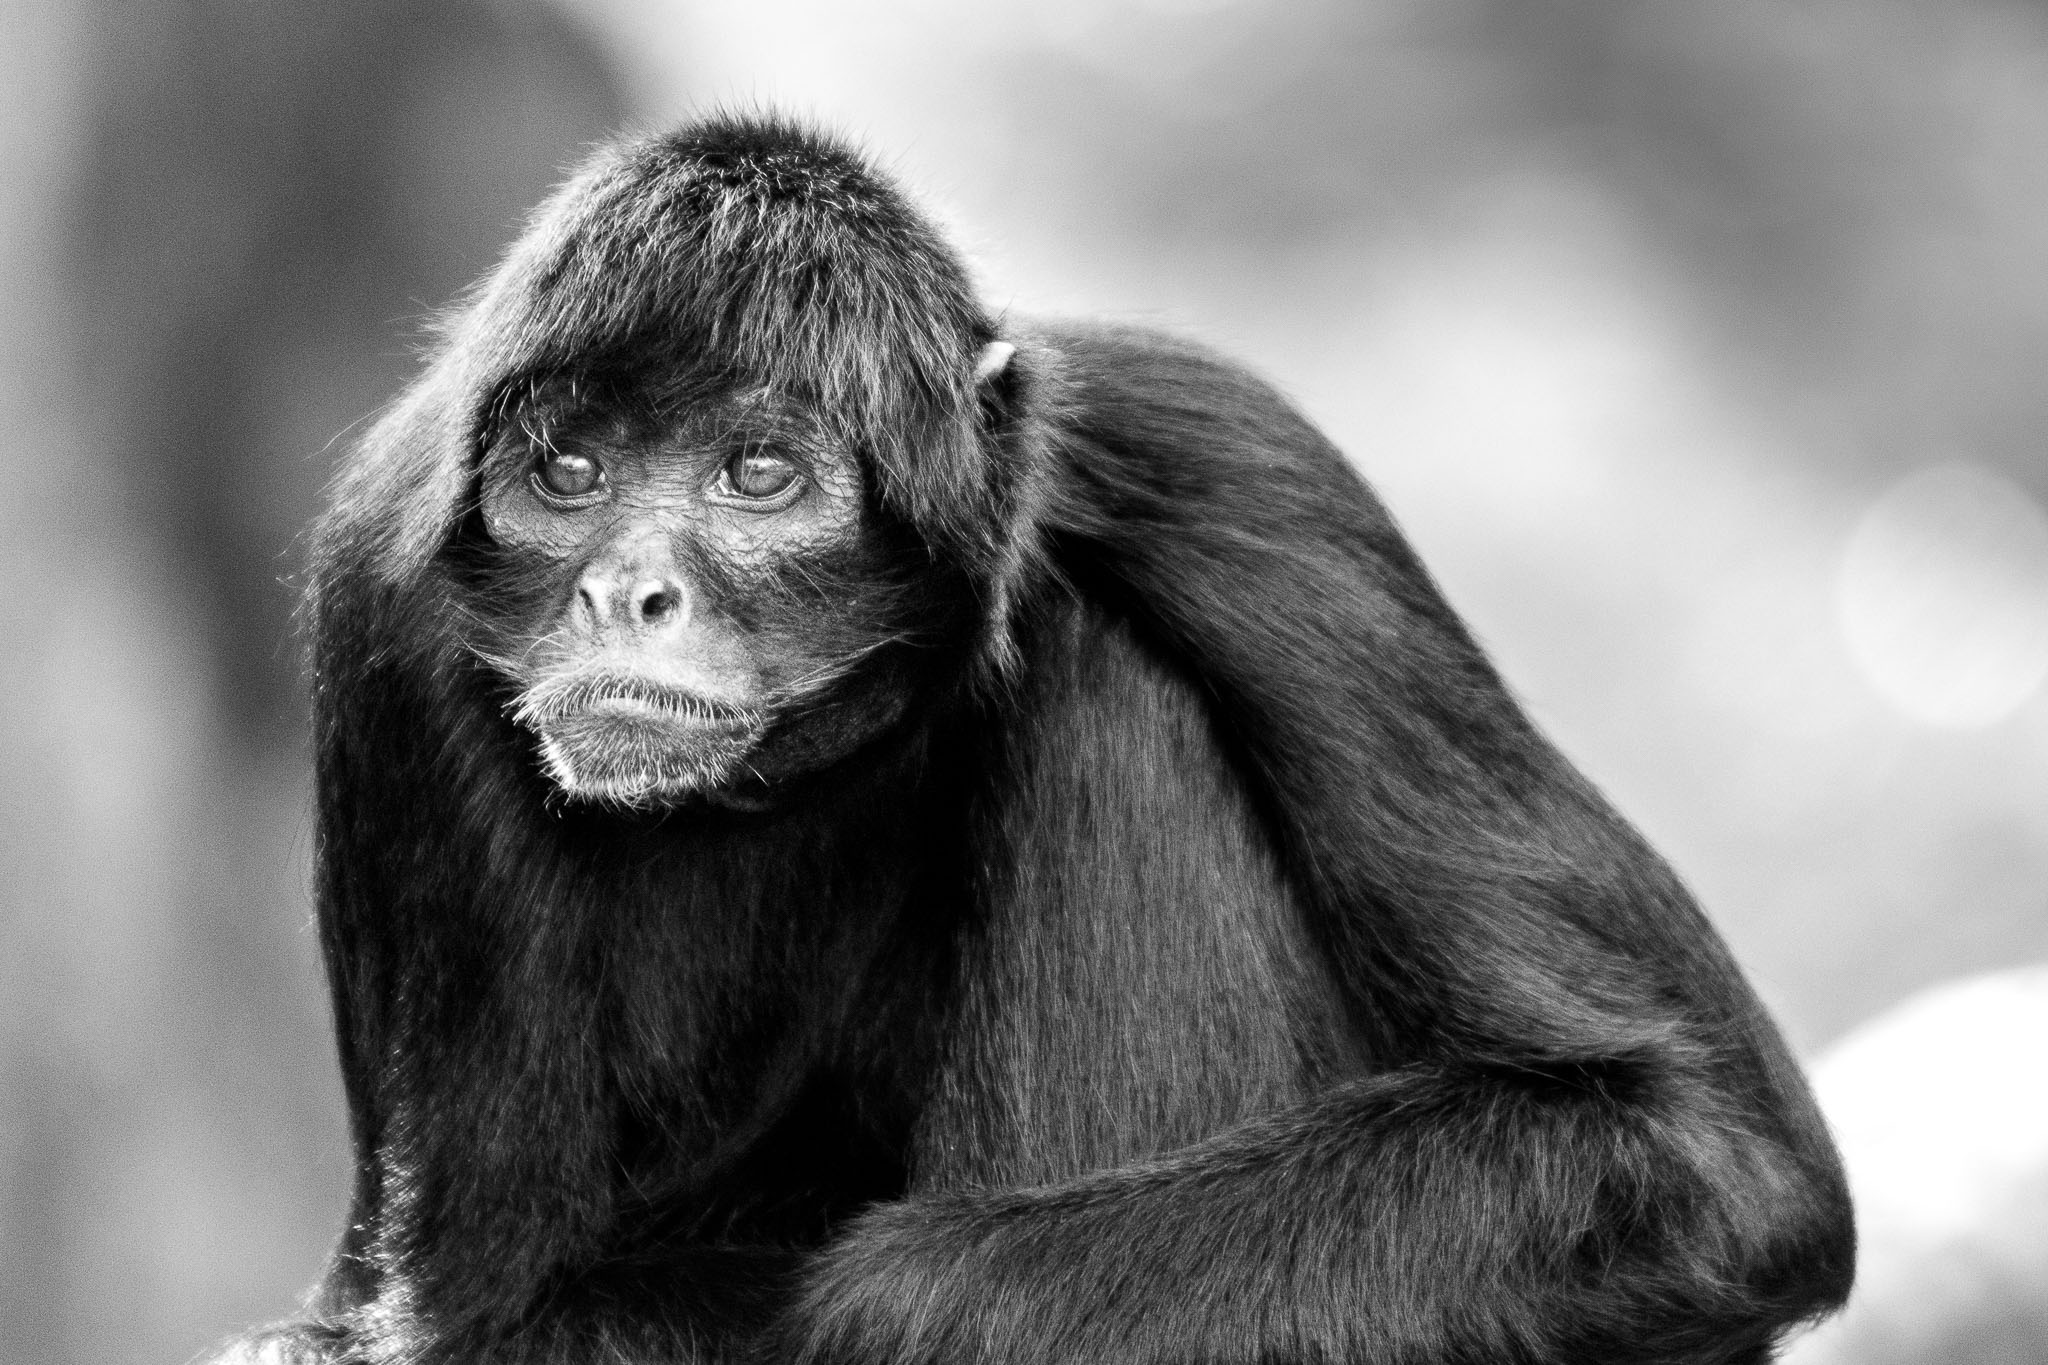 Fota Wildlife park in Cork is dedicated to breeding endangered species. Since they have had a lot of success with cheetahs they are moving out to try and preserve other endangered animals. While visiting I met this black spider monkey who doesn't look to be too enthralled by his life. Is life in captivity worth it to save a species?